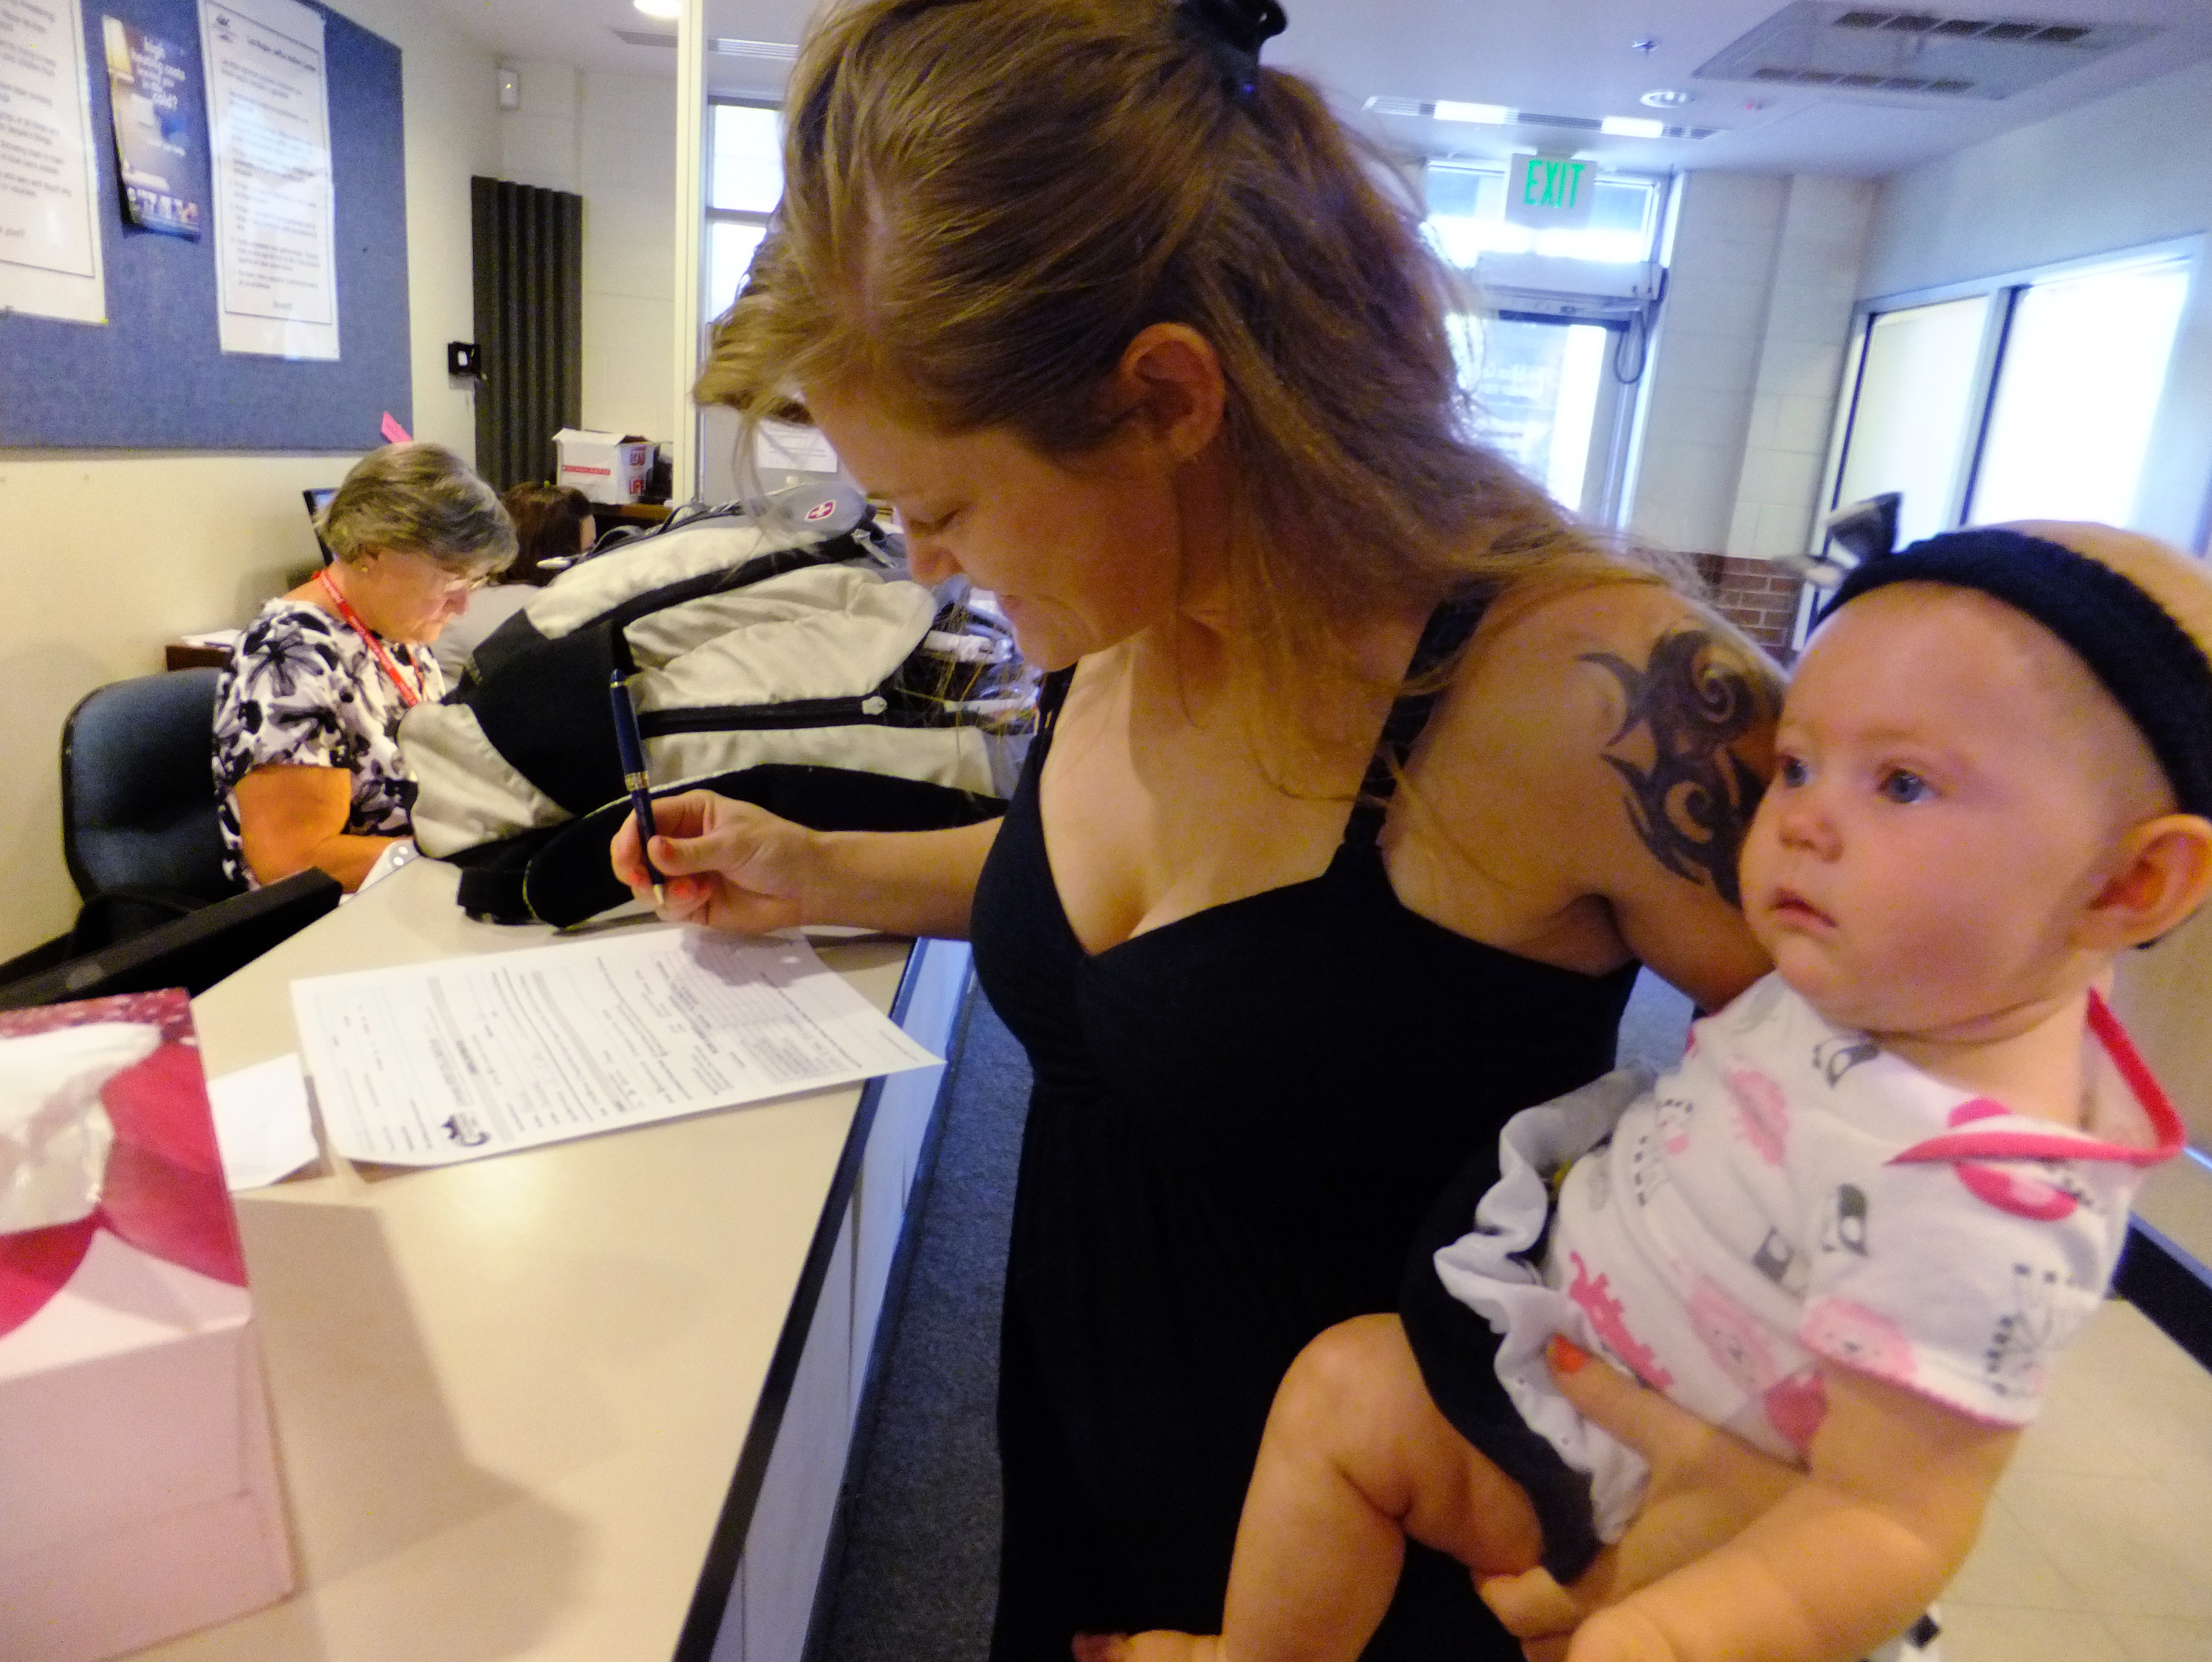 <p>In this July 16, 2012, photo, Laura Fritz, 27, left, with her daughter Adalade Goudeseune fills out a form at the Jefferson Action Center, an assistance center in the Denver suburb of Lakewood.Fritz grew up in a solidly middle class family, but she and her boyfriend, who has struggled to find work, and are now relying on government assistance.</p>